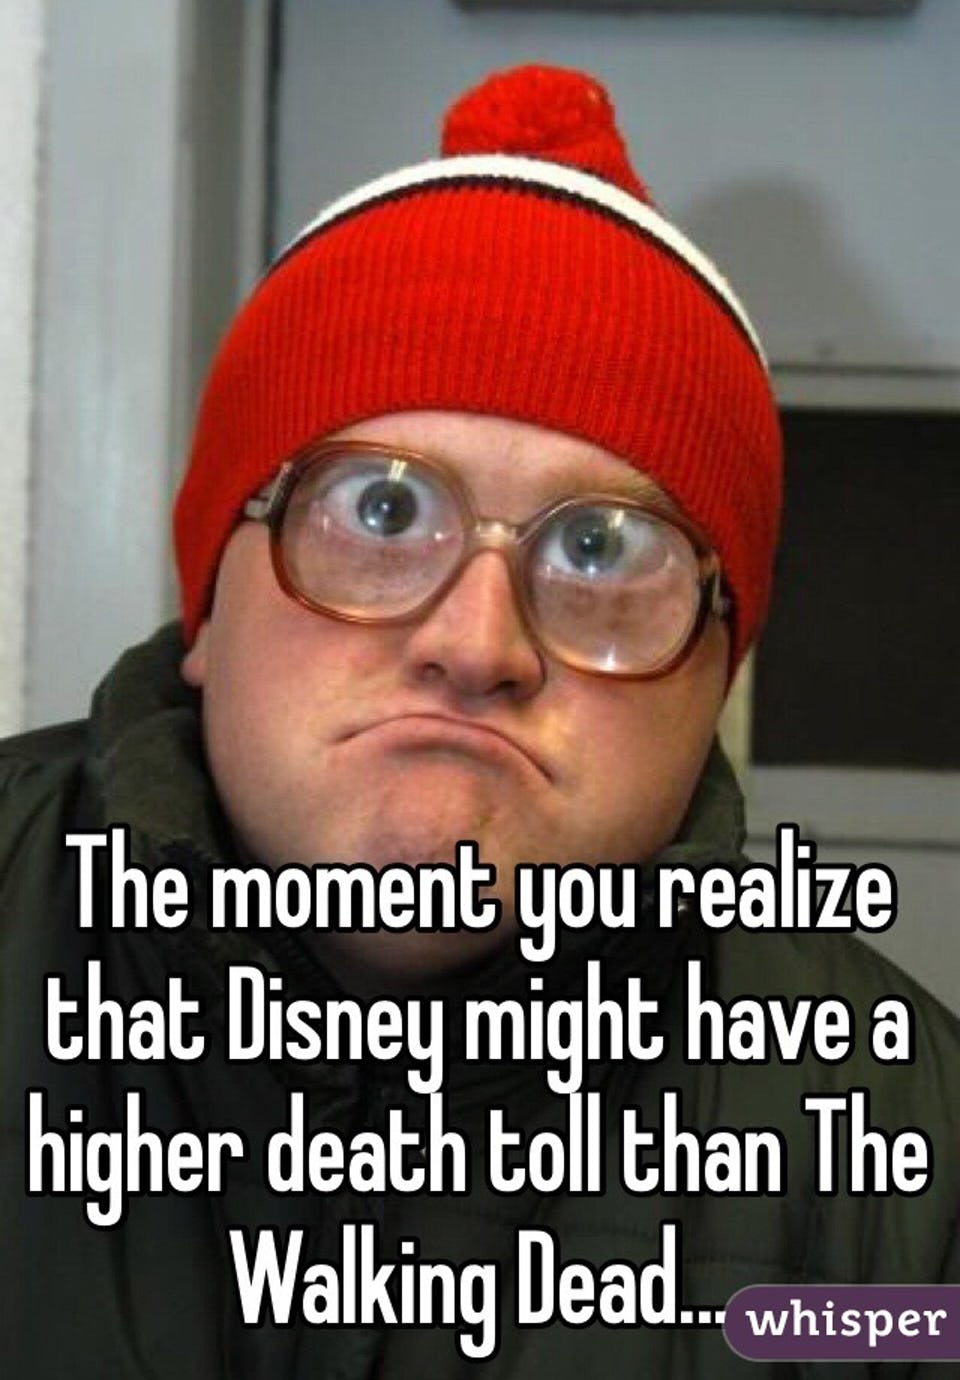 Disney movies are filled with tragic deaths